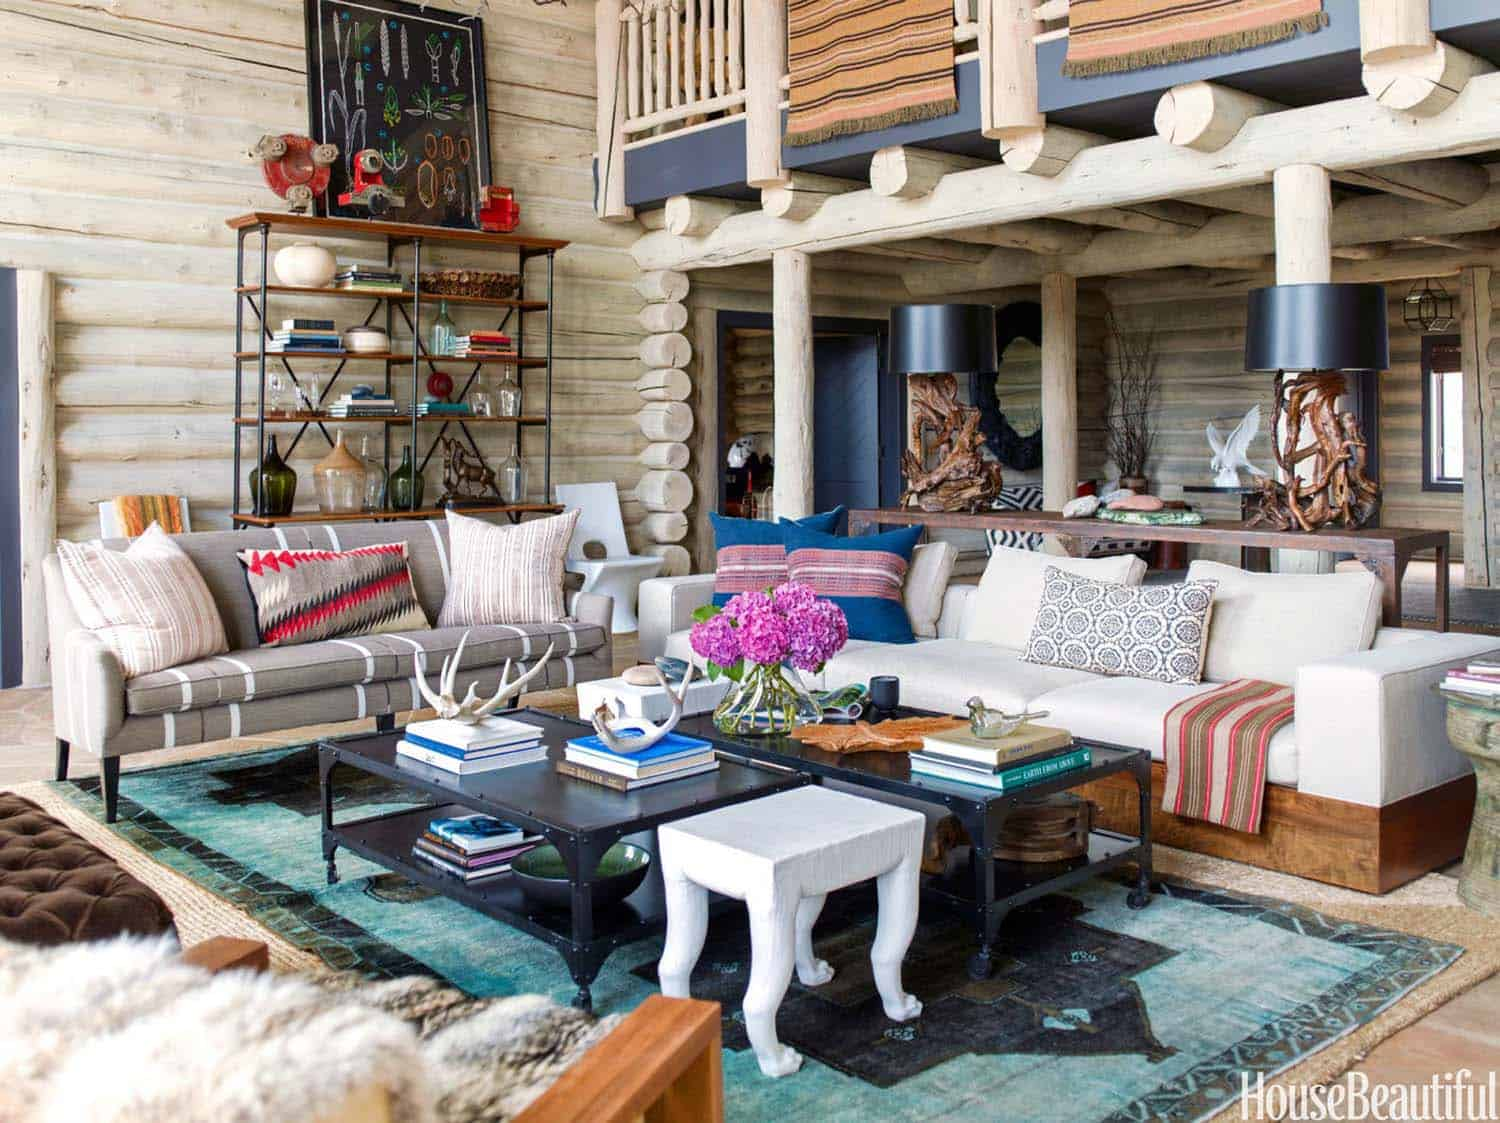 Rustic Log Cabin-Thom Filicia-02-1 Kindesign